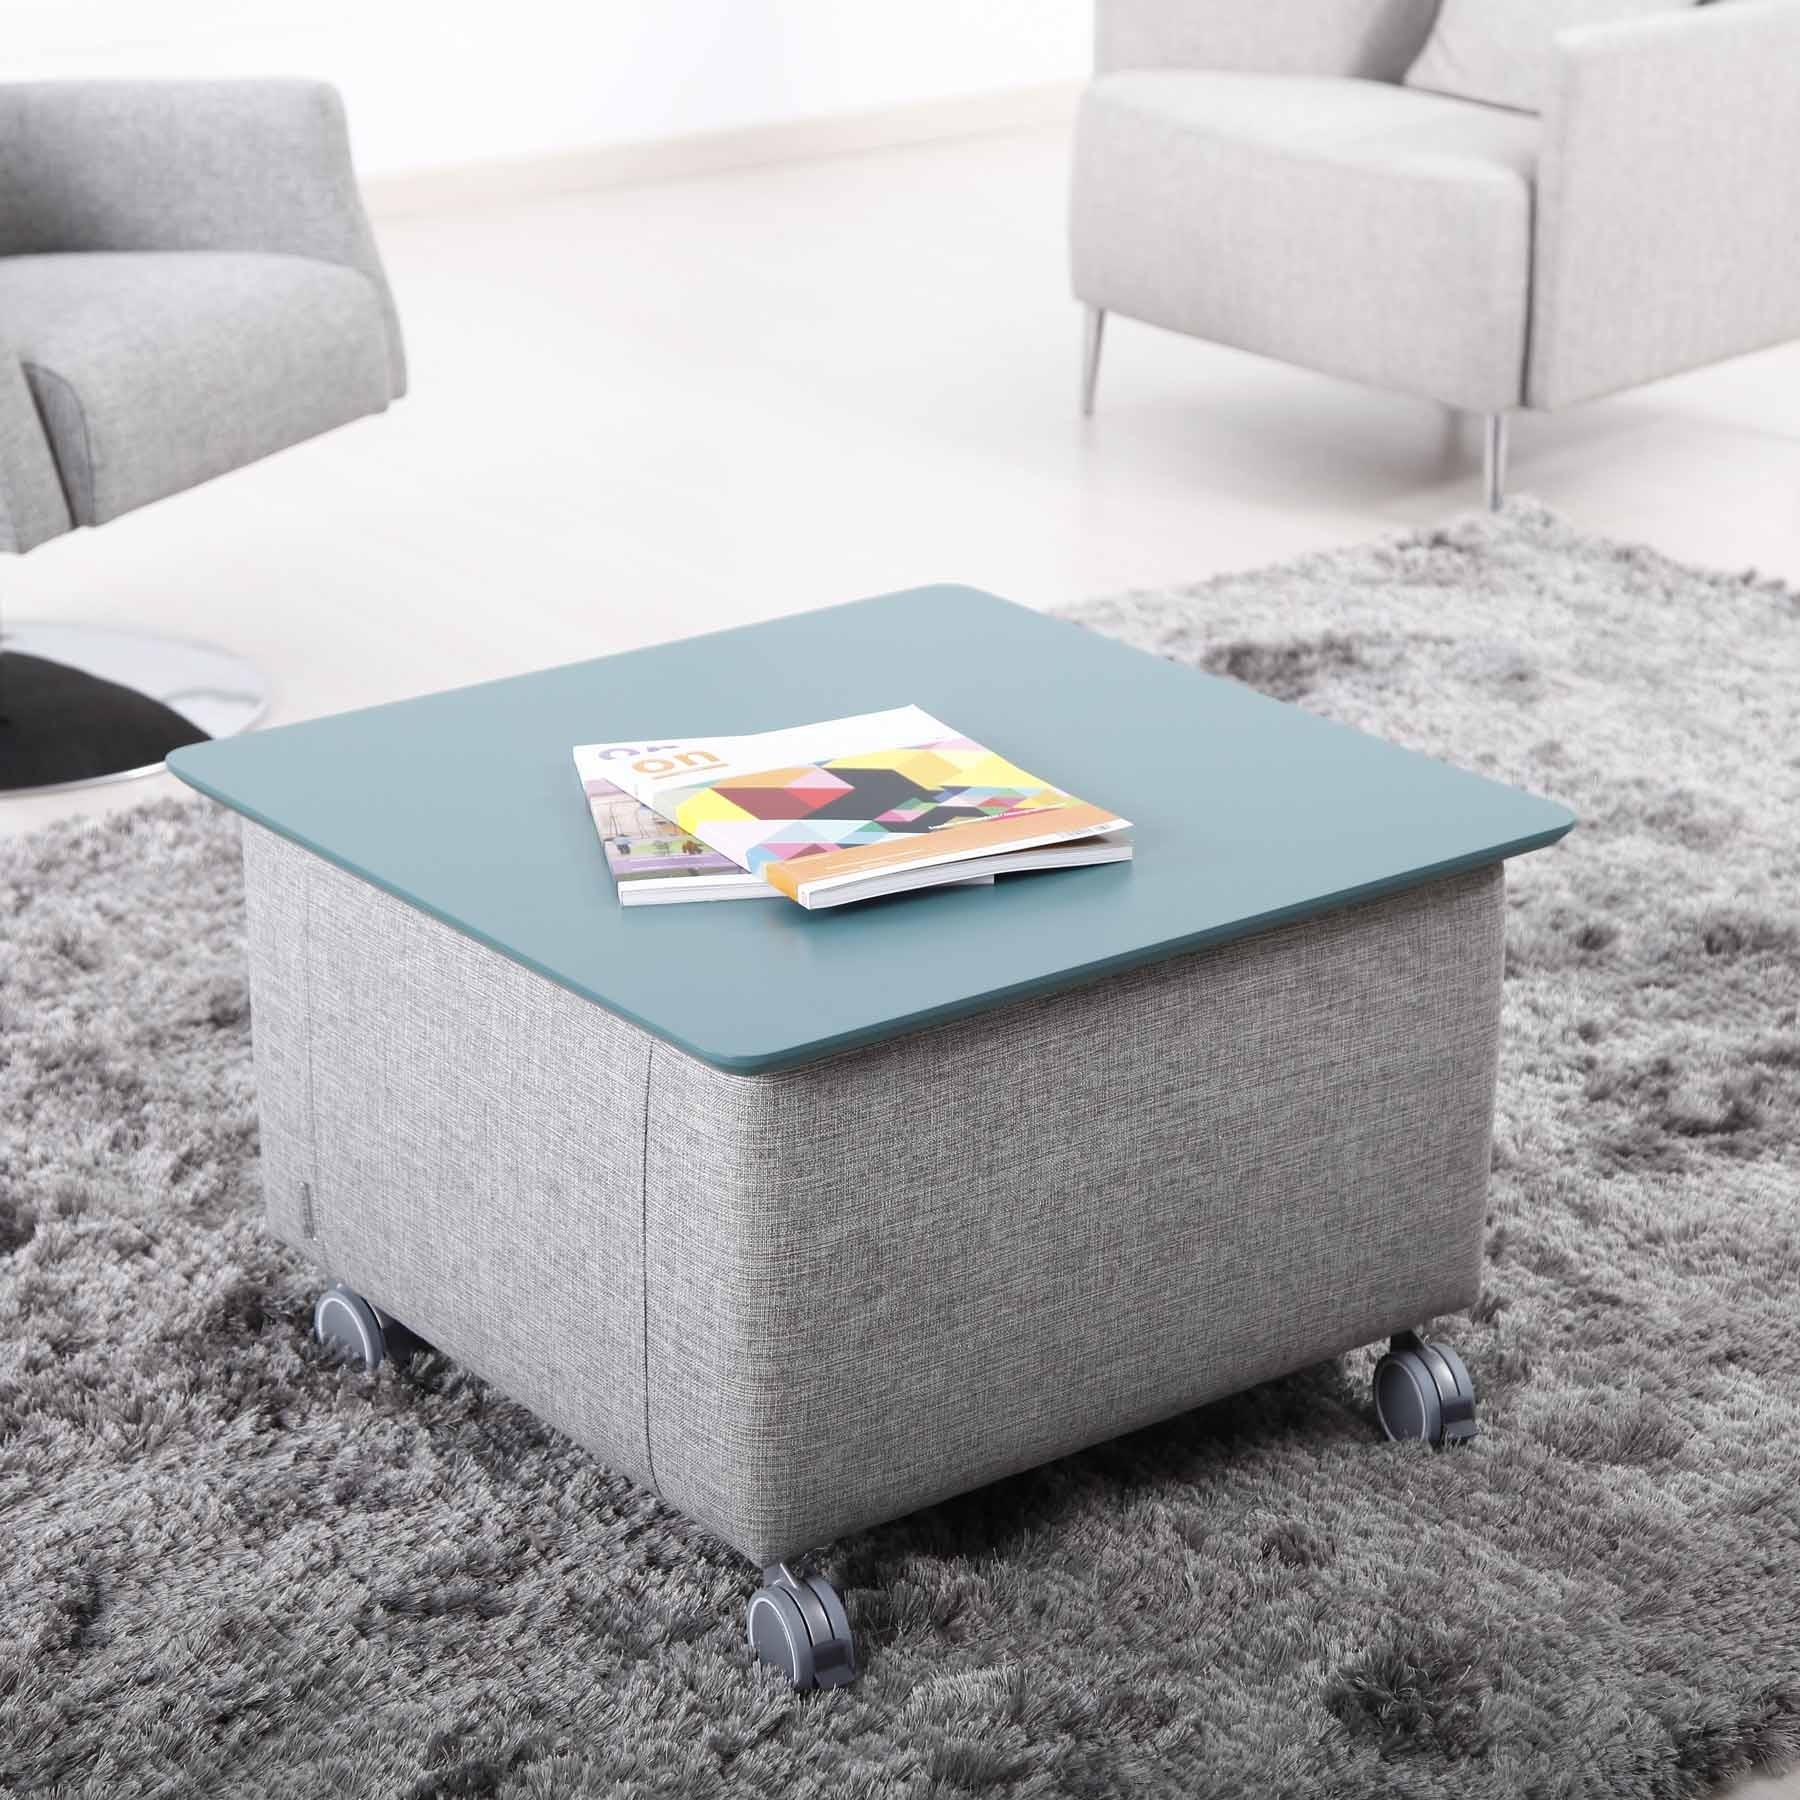 Adam 70 Coffee Table | Tr Hayes - Furniture Store, Bath within Adam Coffee Tables (Image 2 of 30)